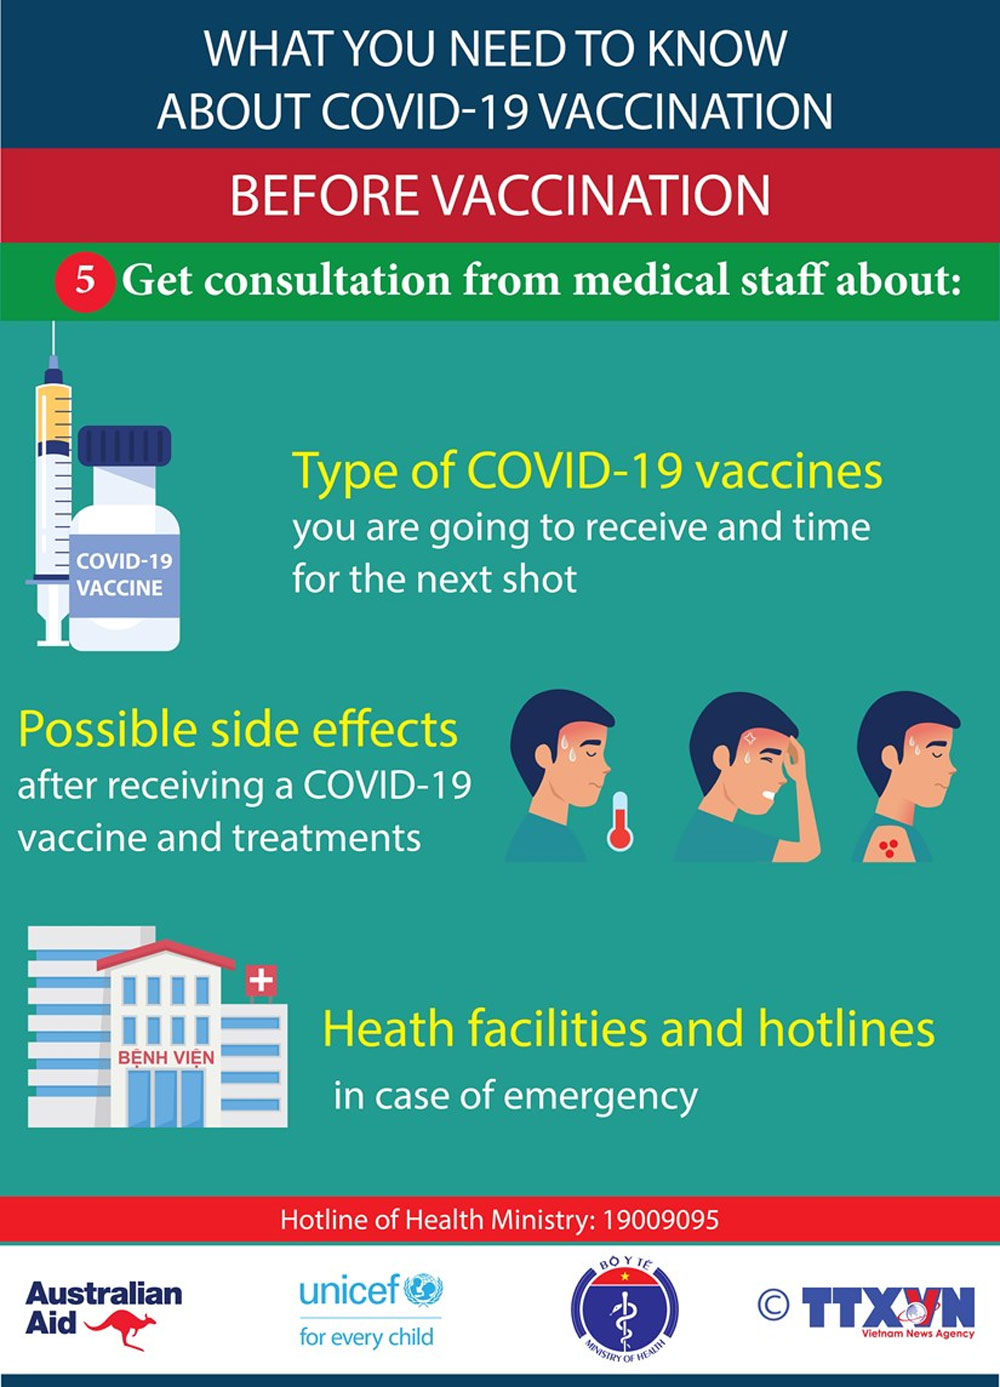 need to know, Covid-19 vaccination, Covid-19 vaccines, get consultation, medical staff, treatments and health facilities